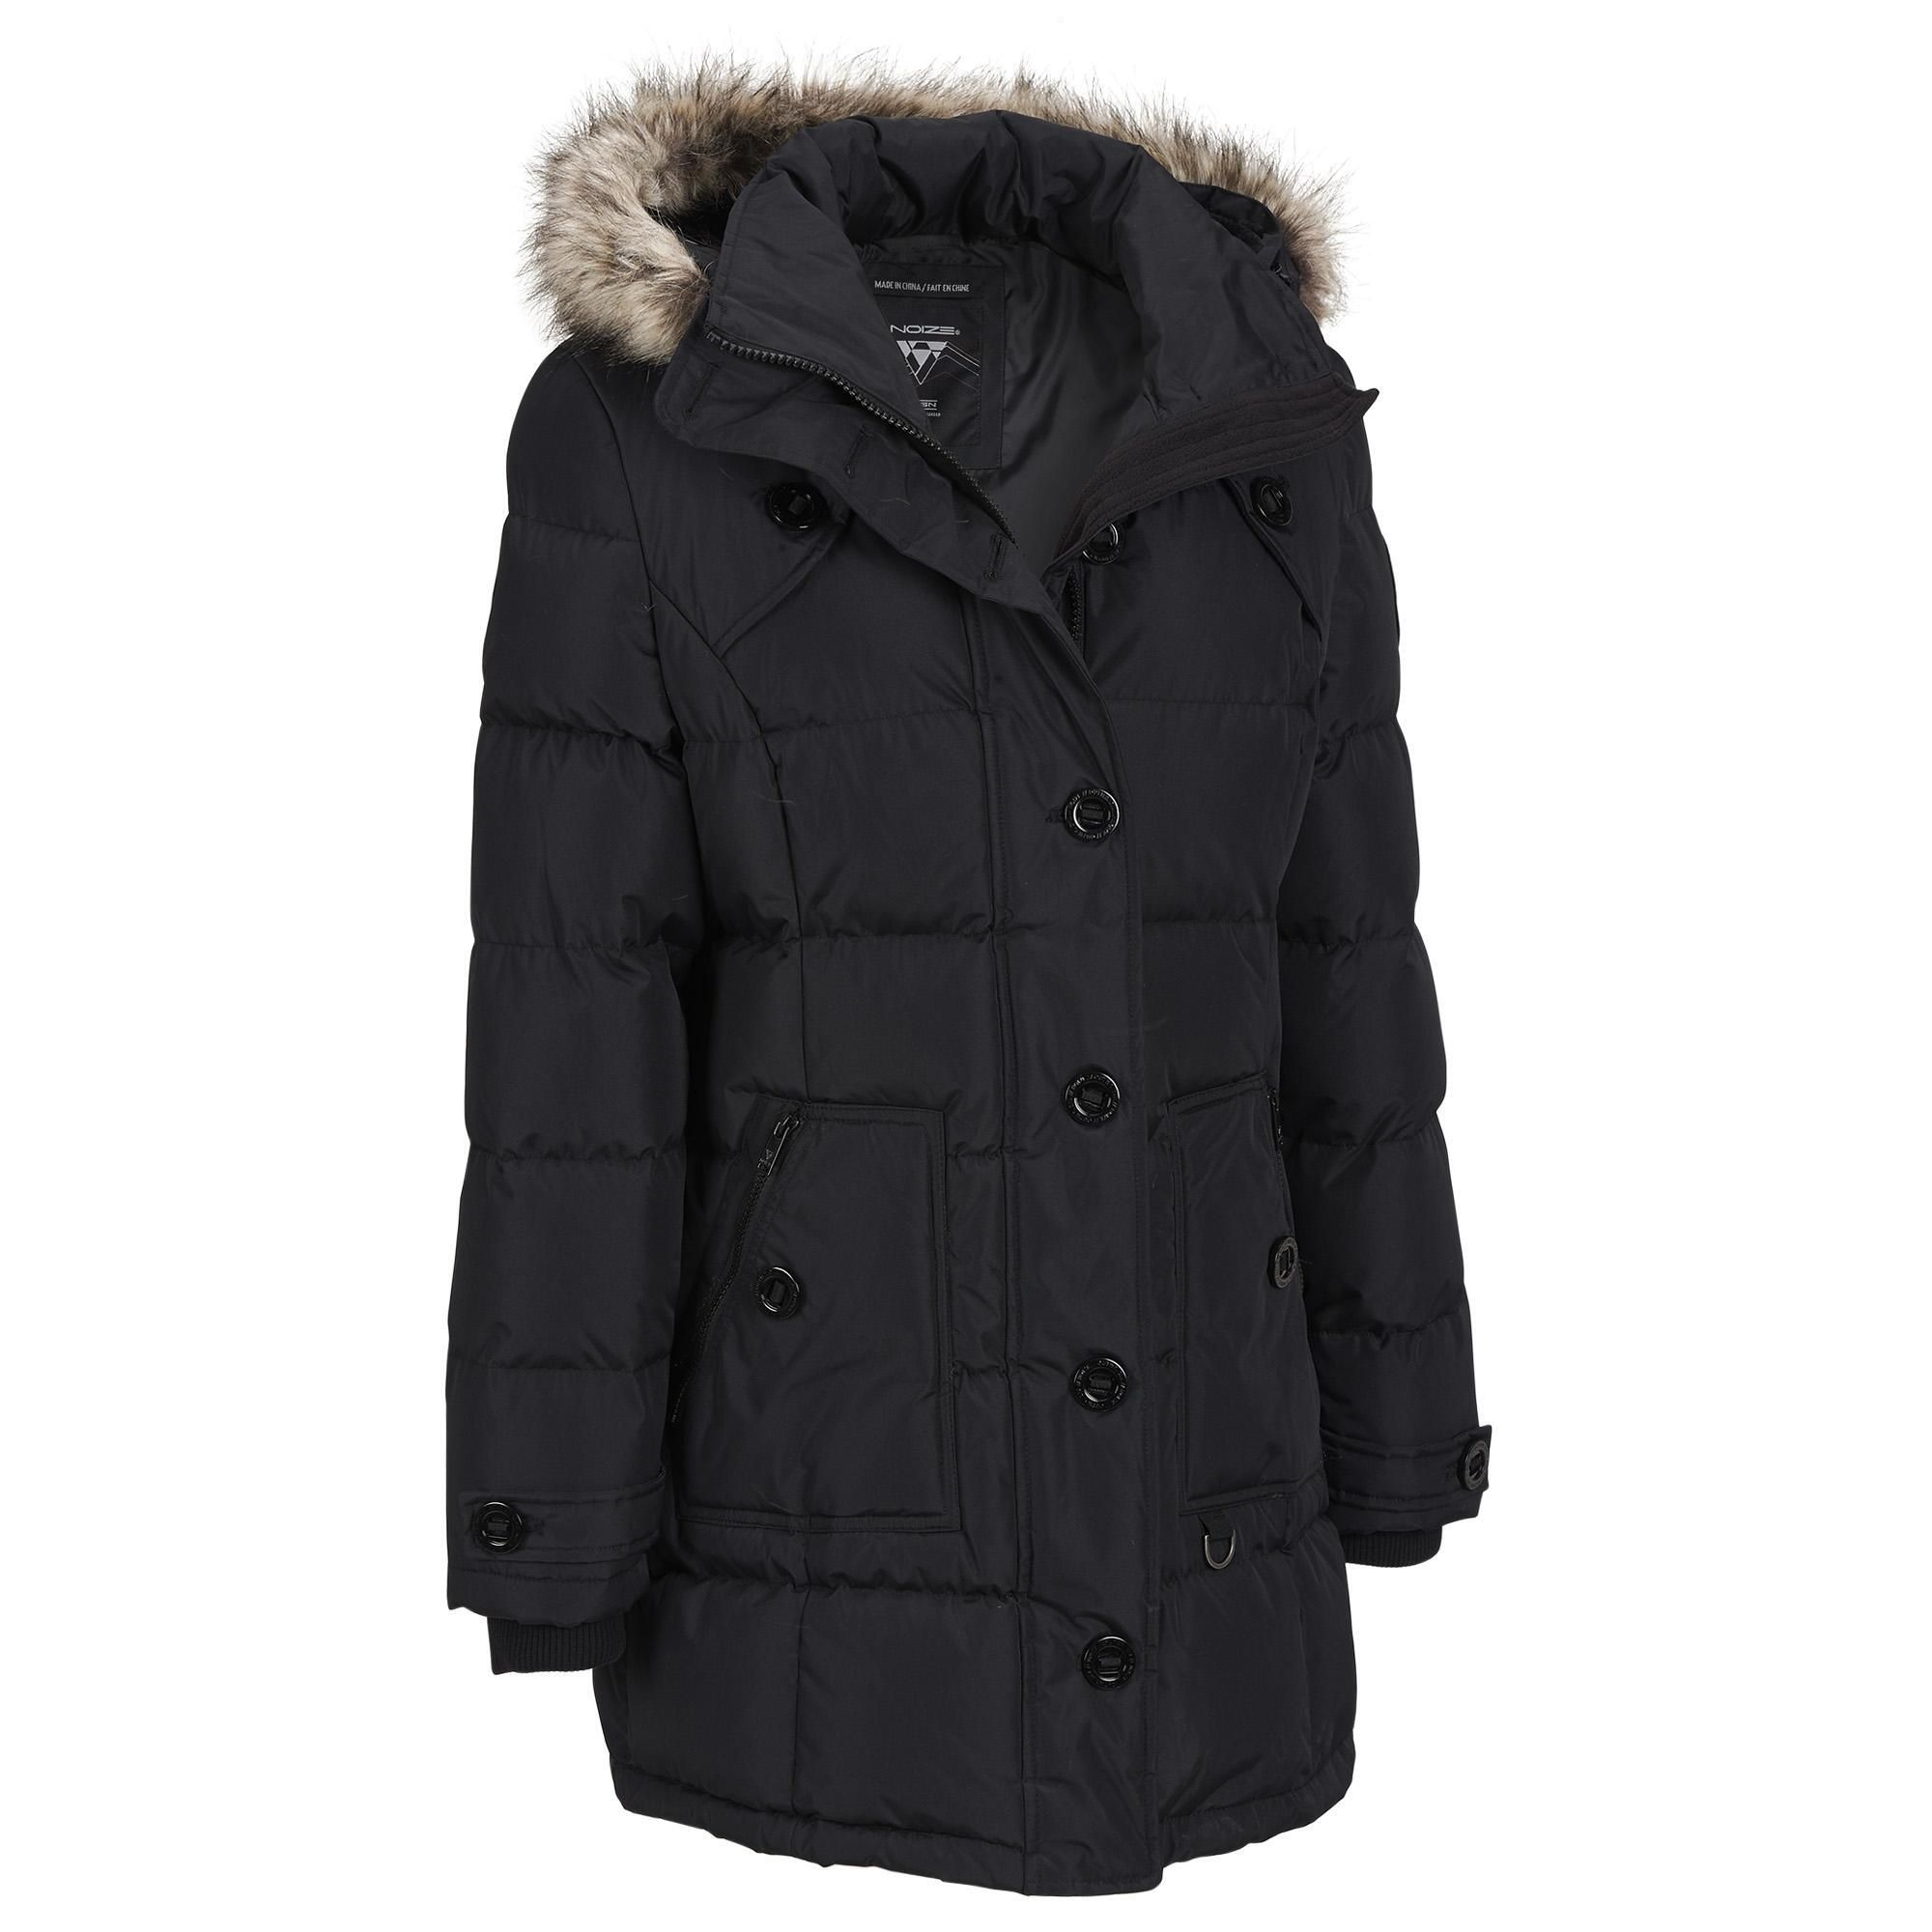 Noize Quilted Mid Length Puffy w/FauxFur Hood Was 550